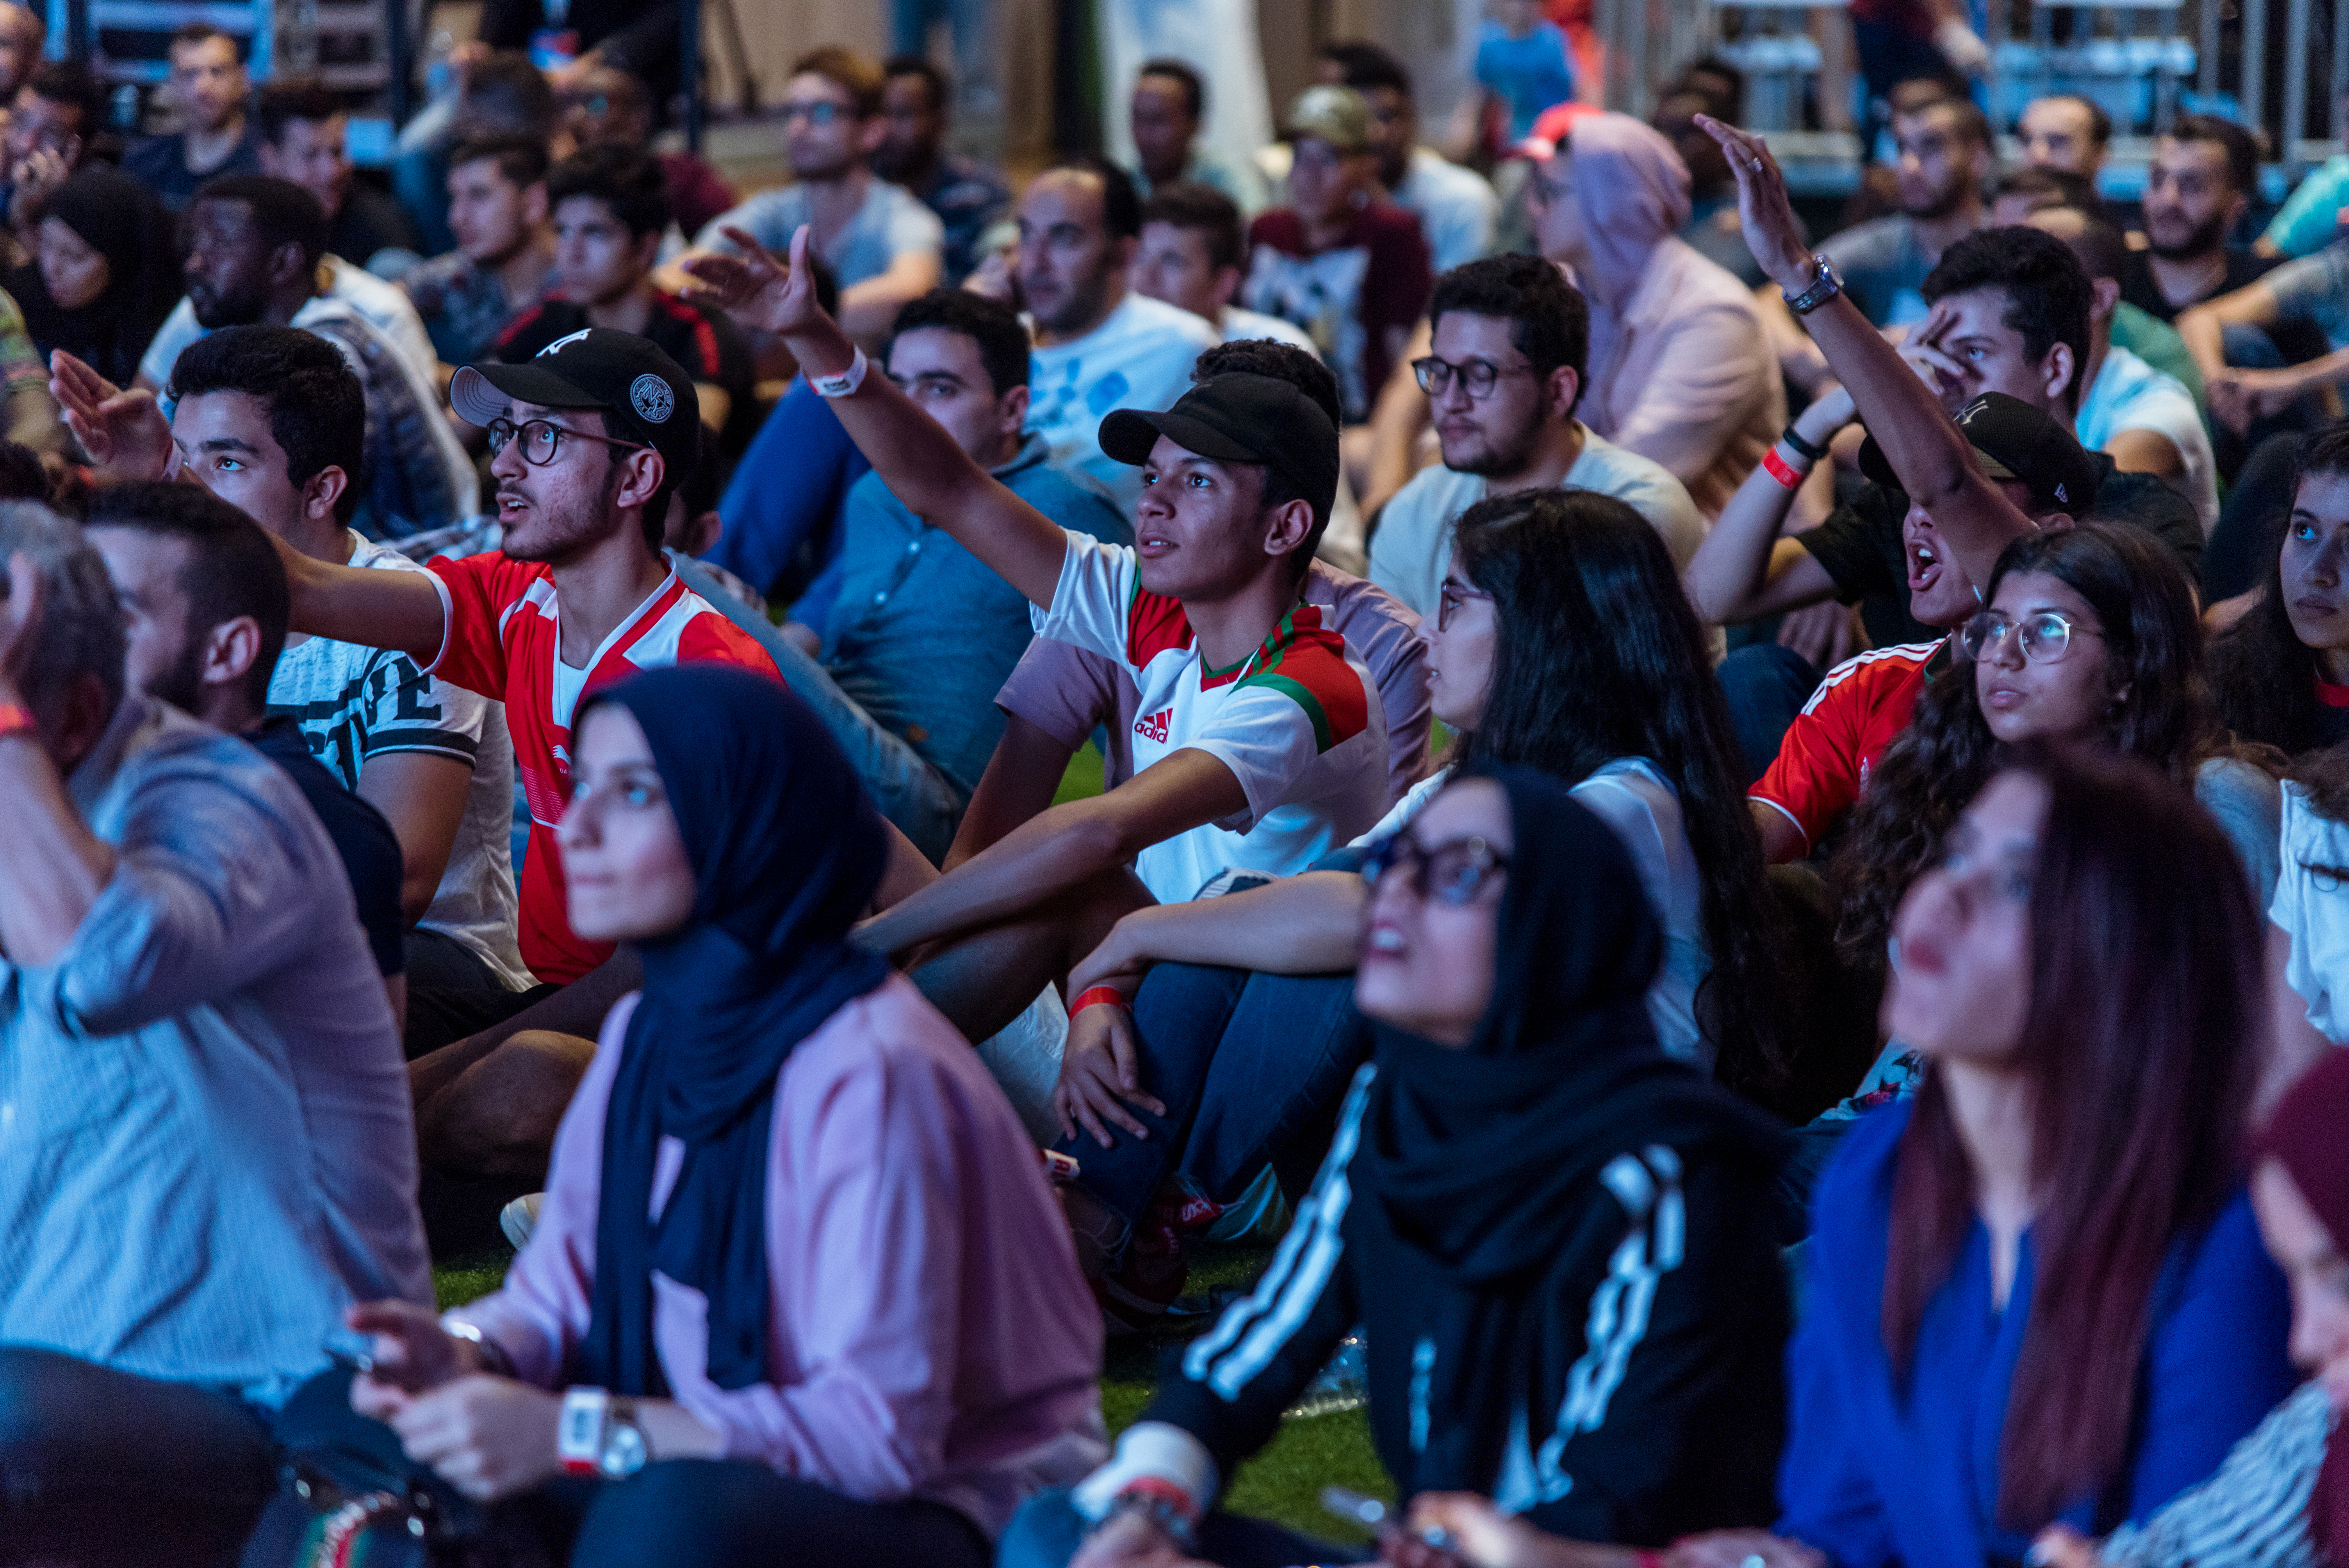 After a stunner of a World Cup, Vodafone Qatar wraps up its